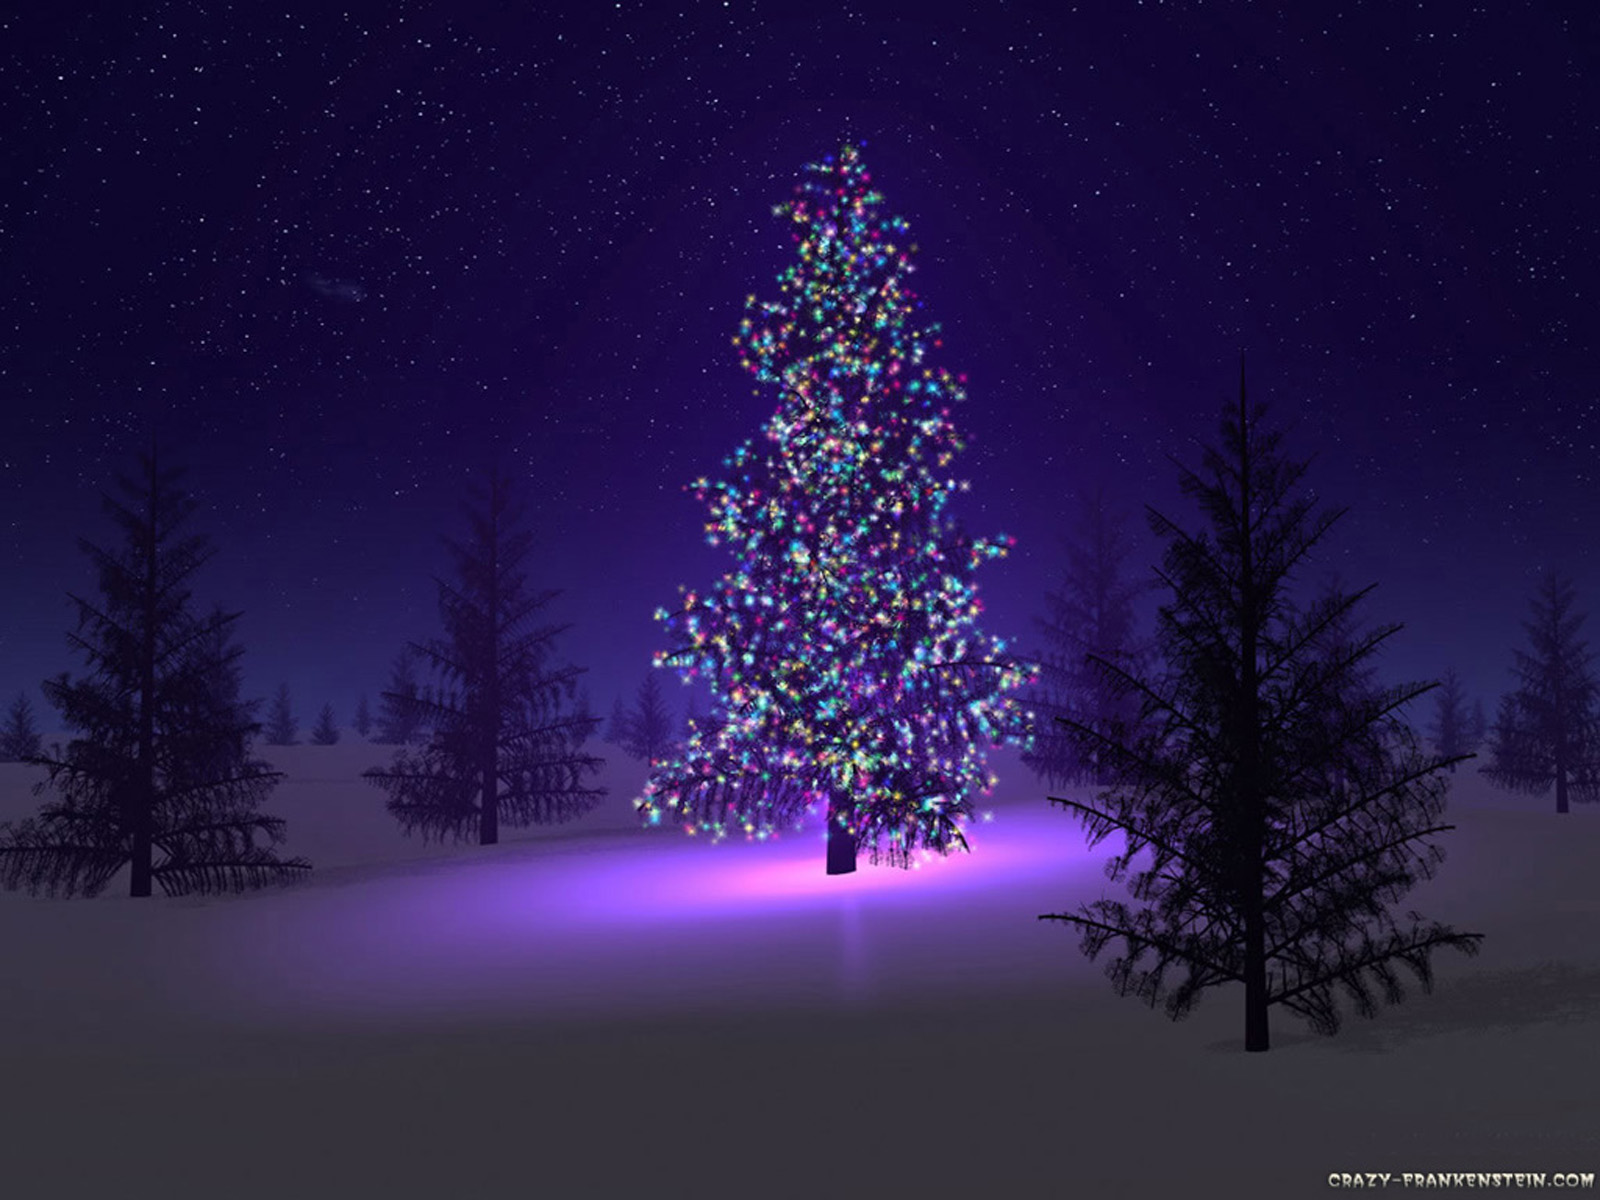 Artificial Christmas tree   wallpaper backgrounds   desktop wallpapers 1600x1200